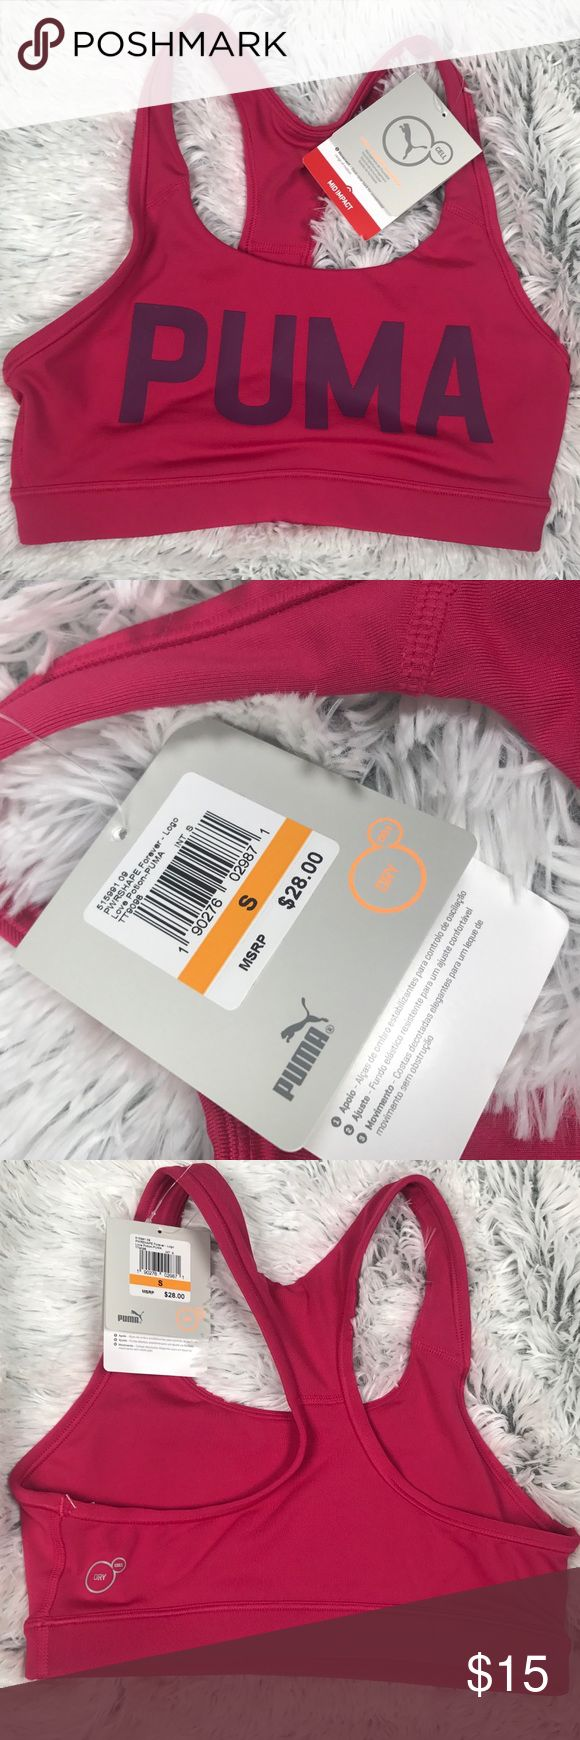 NWT! Puma Pink Cat Dry Cell sports bra Pink Puma bra with Cat logo across front. New with tags. Puma Intimates & Sleepwear Bras